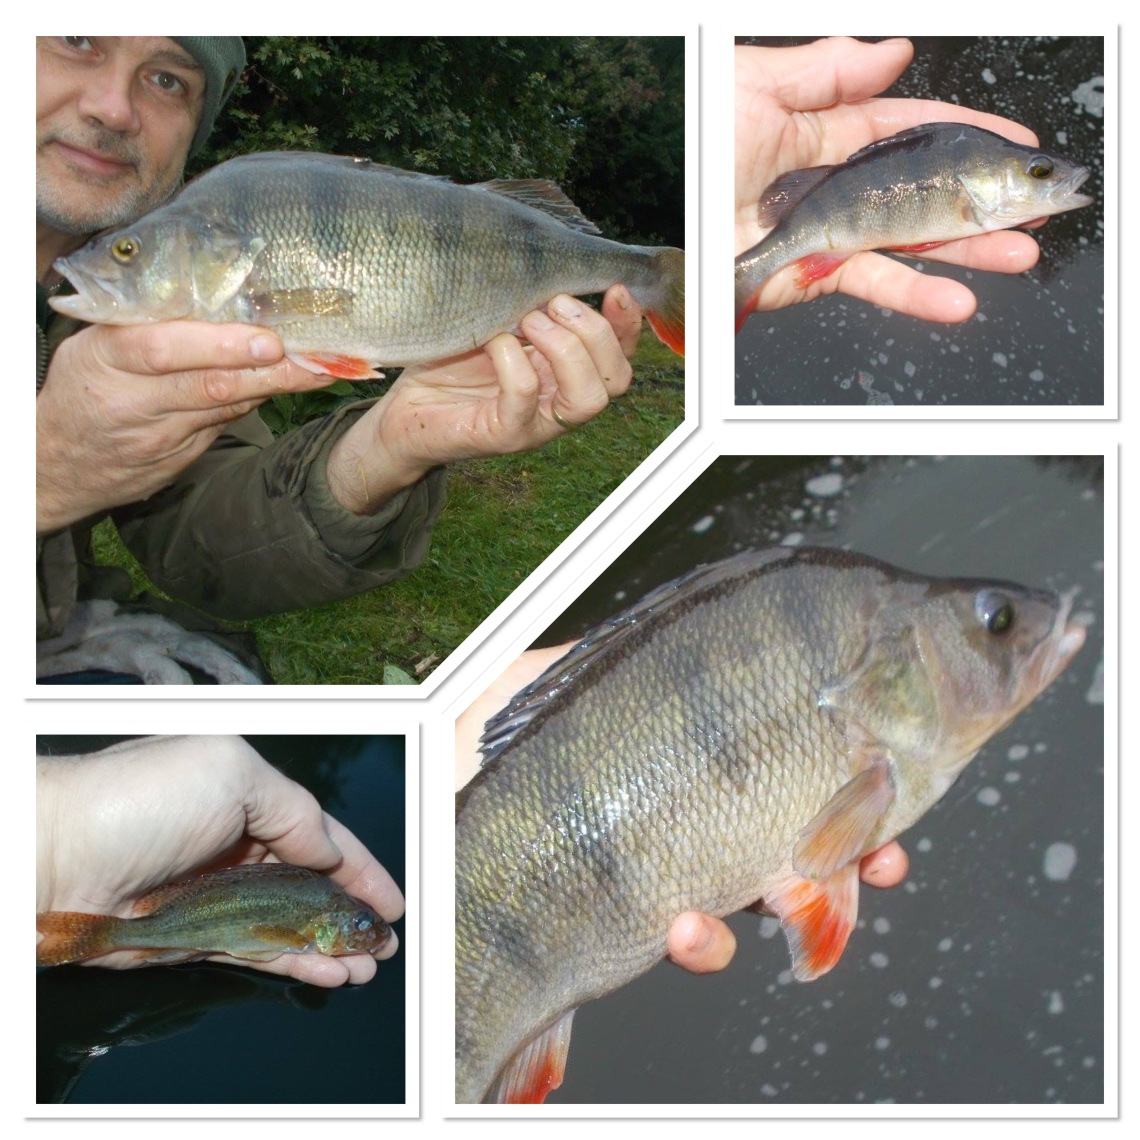 A really nice ruffe - mind you, the perch aren't too bad either